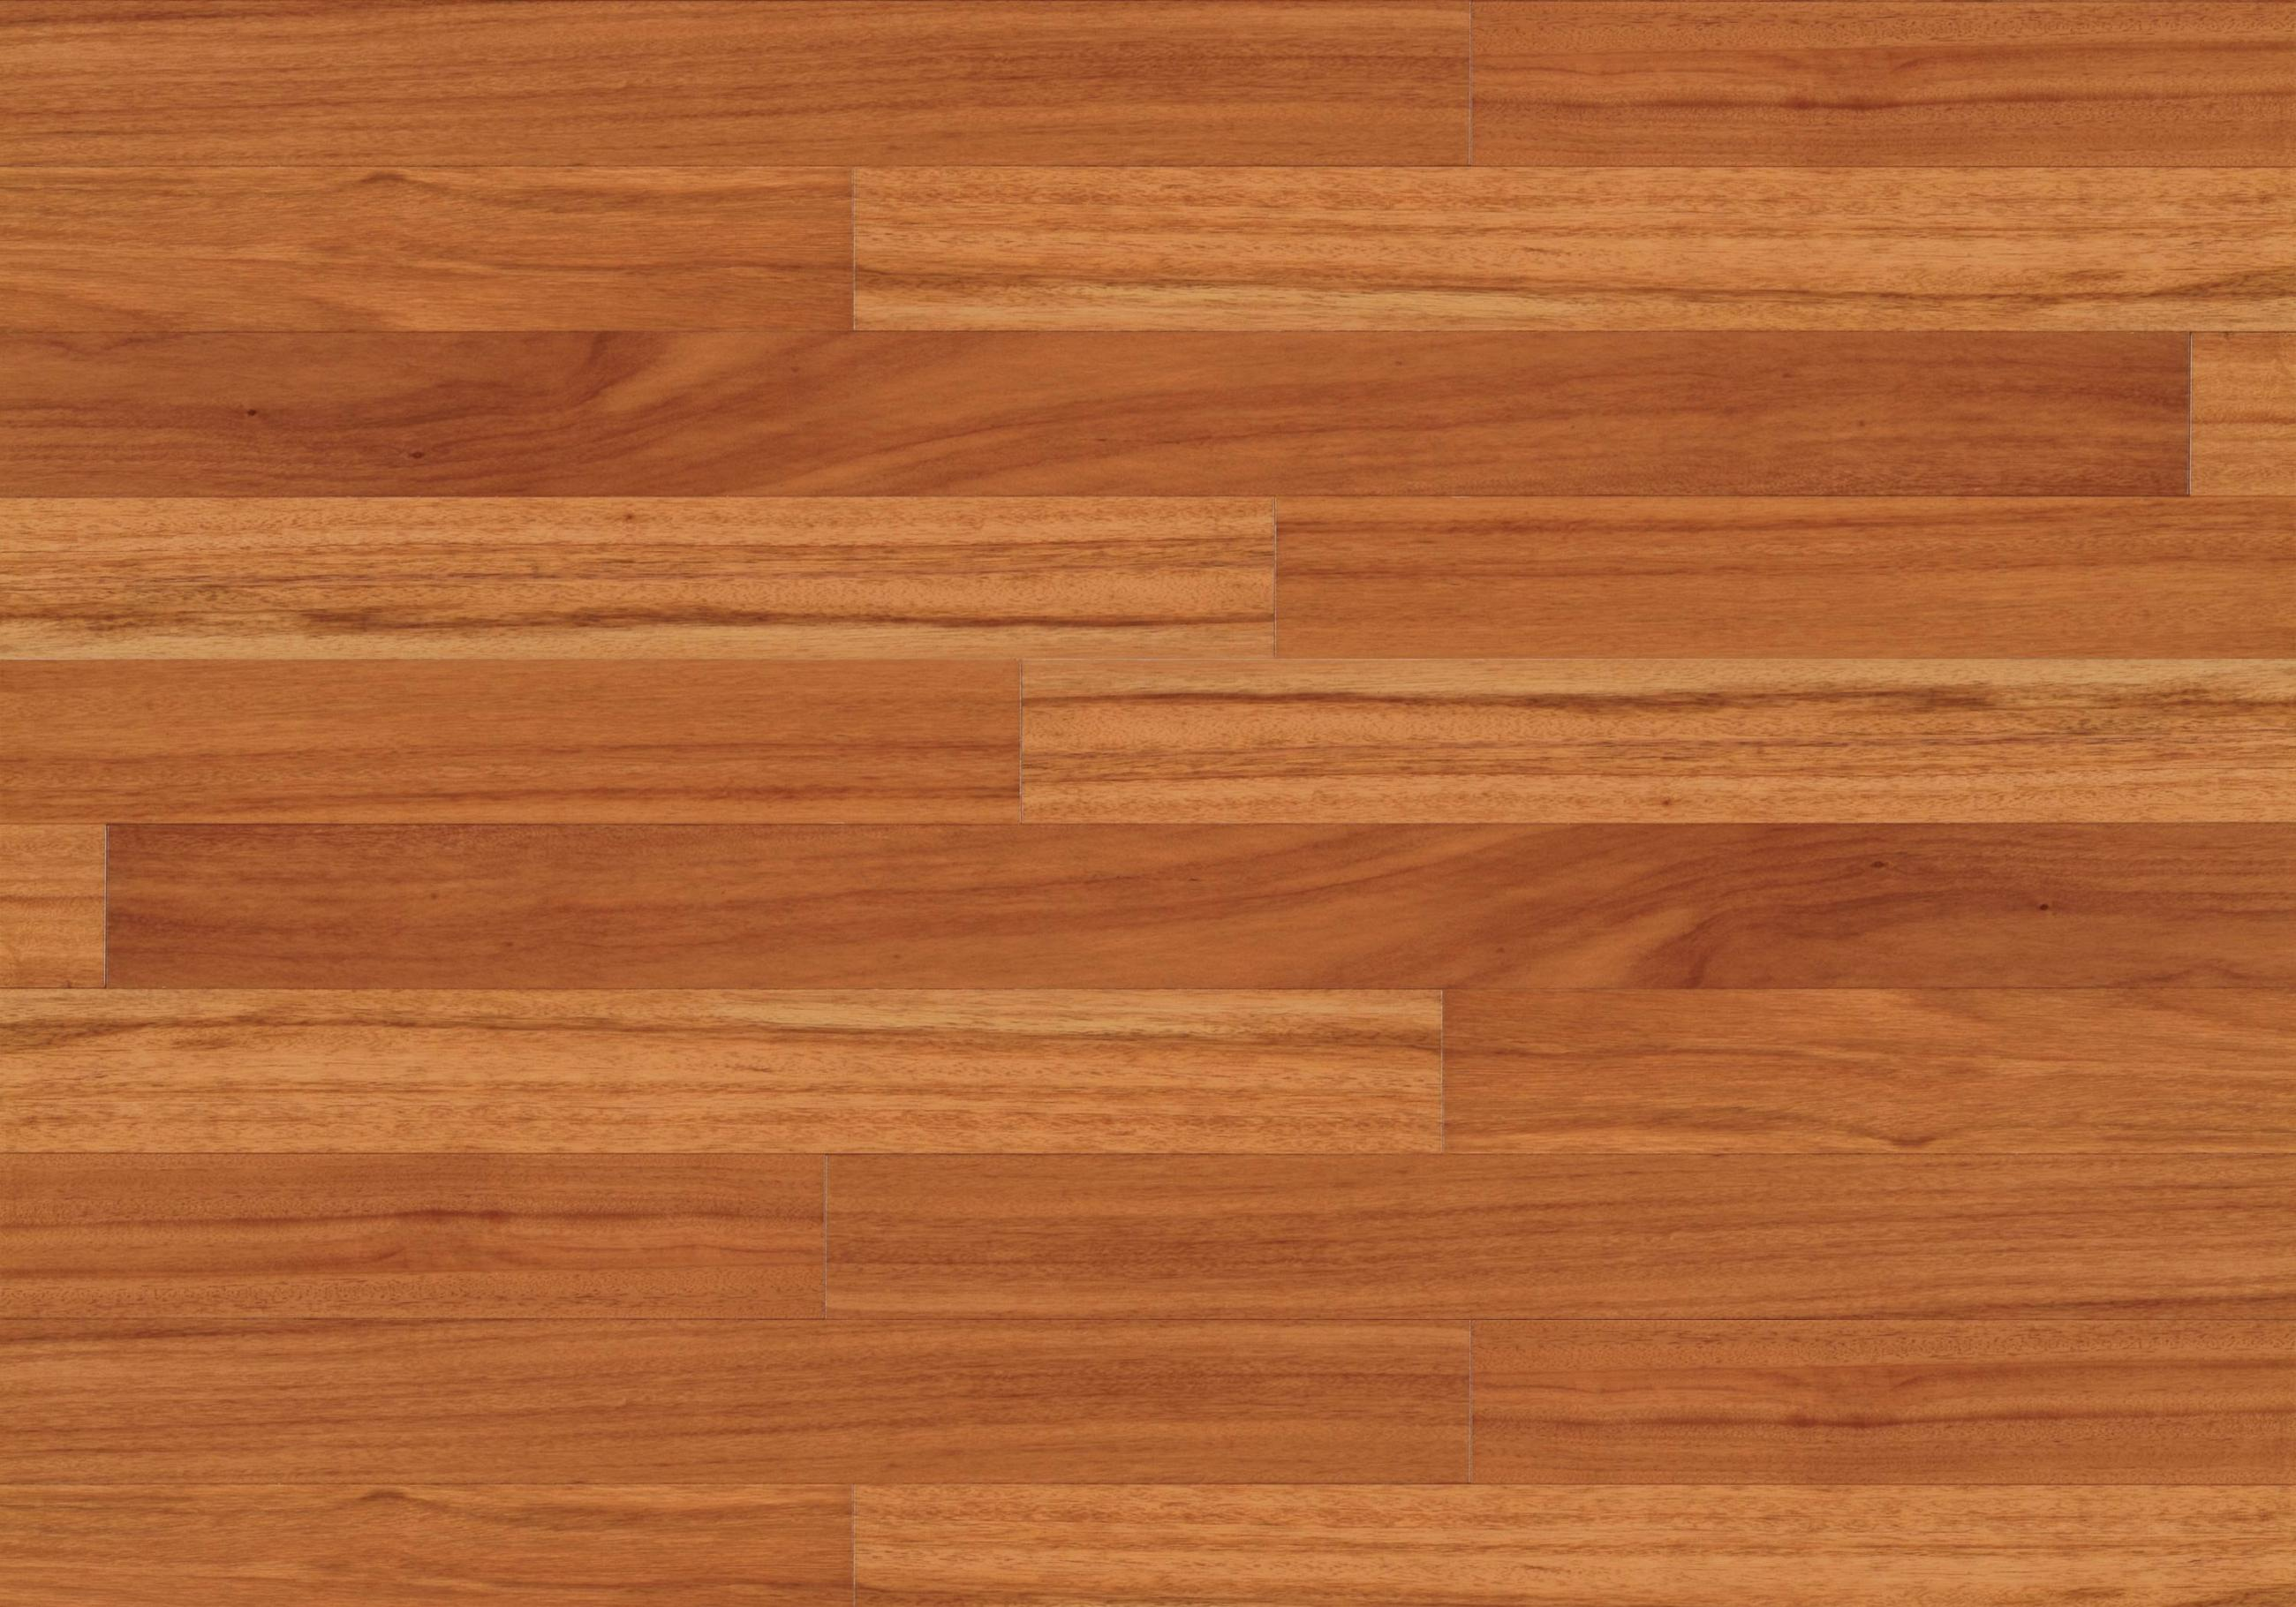 Engineered hardwood flooring specialty store in anaheim ca for Hardwood timber decking